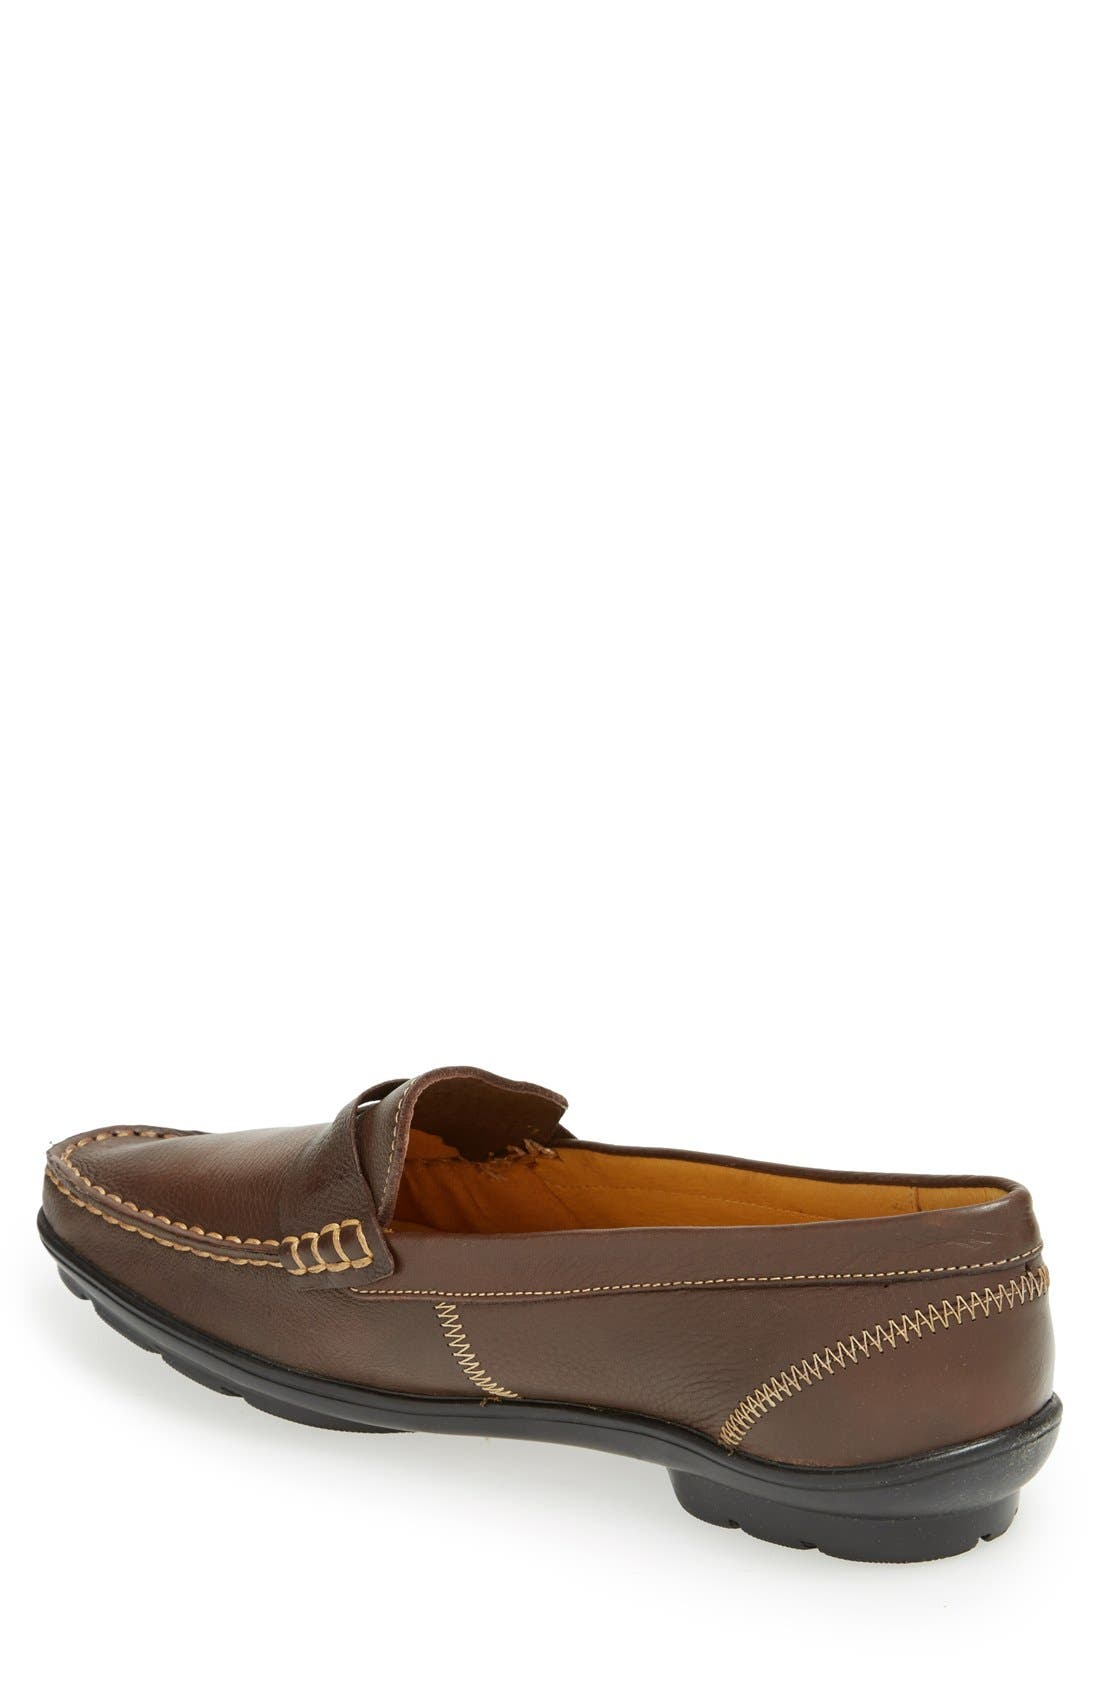 Alternate Image 2  - Sandro Moscoloni 'Bimini' Penny Loafer (Men)